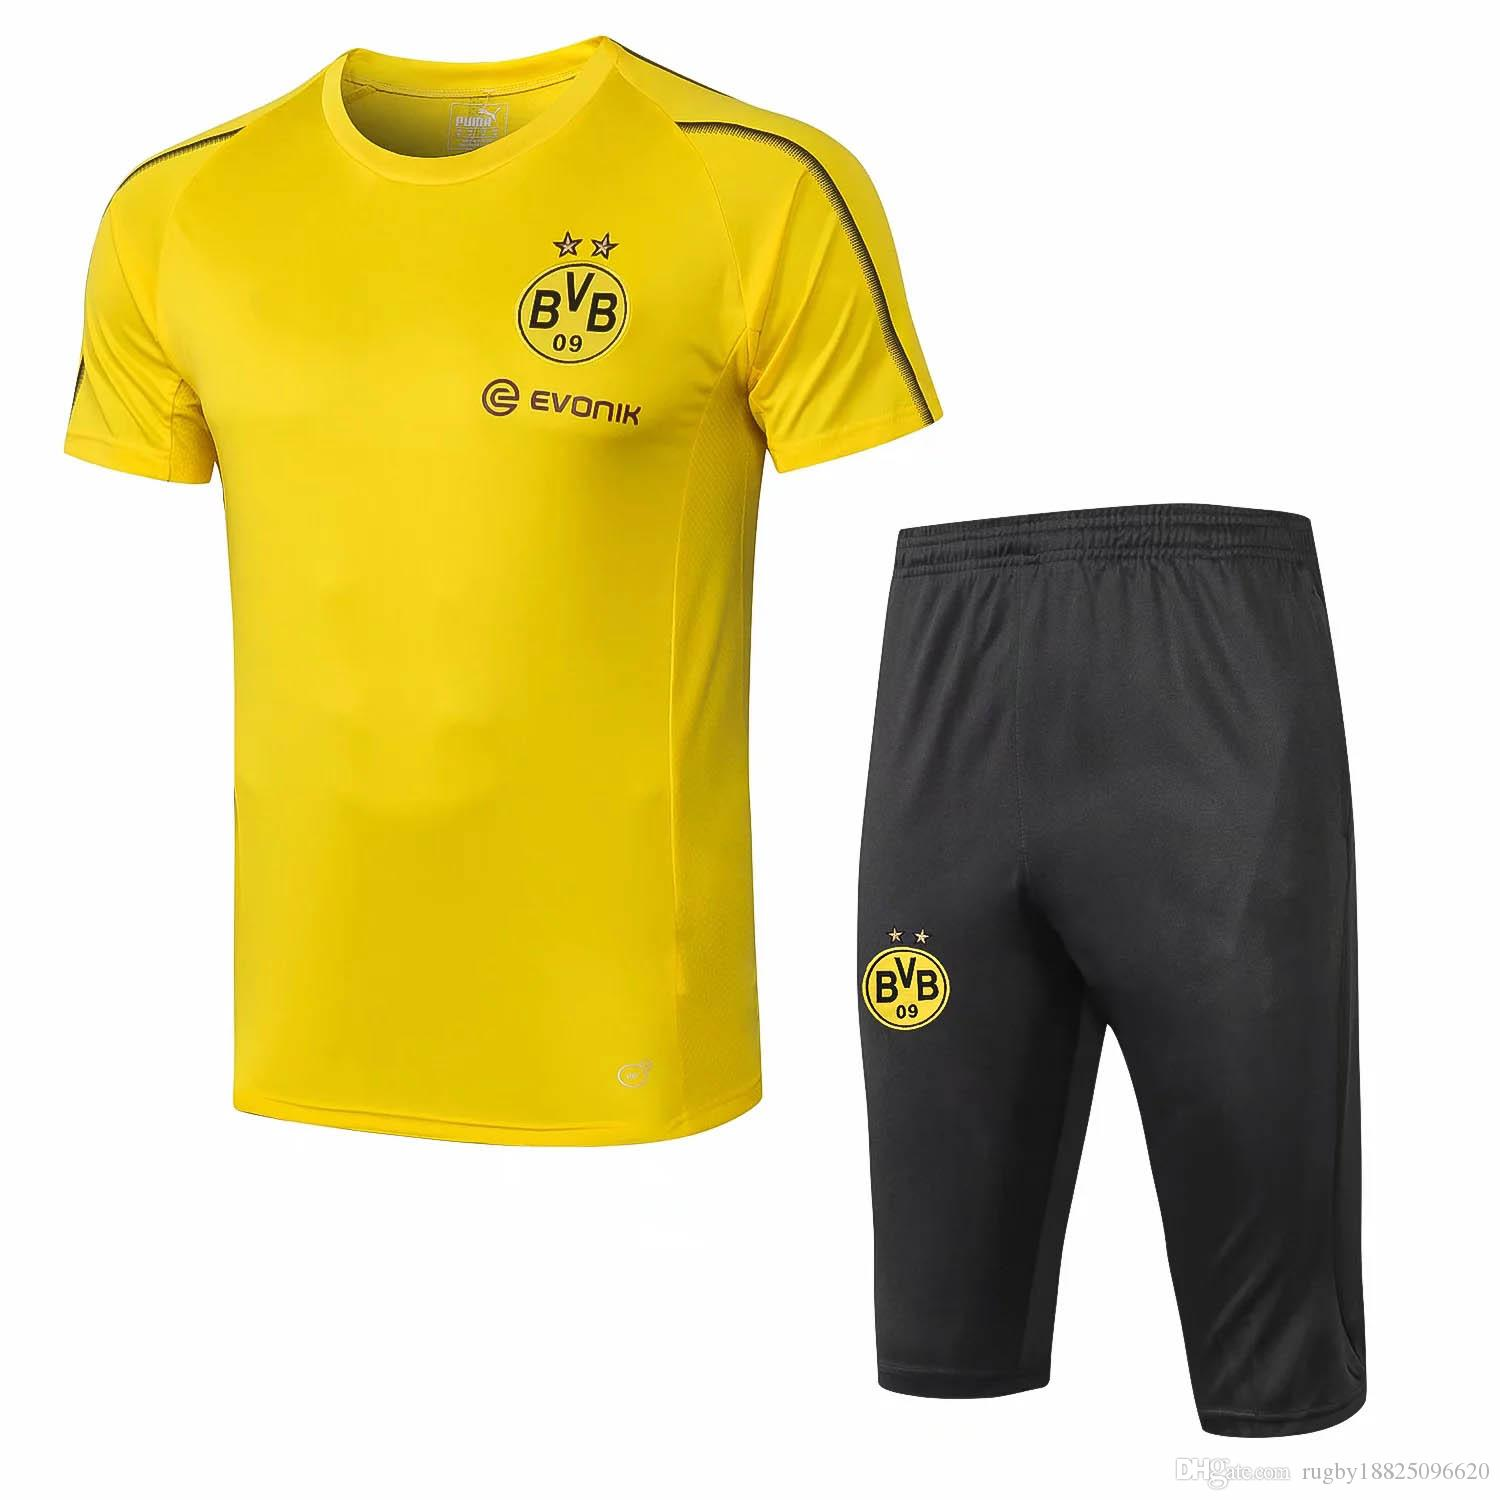 faaf21a17 2019 Top Quality 18 19 Dortmund Shrot Sleeve Tracksuit Kit Man United  Football Shirt Rome Training Suit Madrid Jerseys Maillot De Foot From  Rugby18825096620 ...